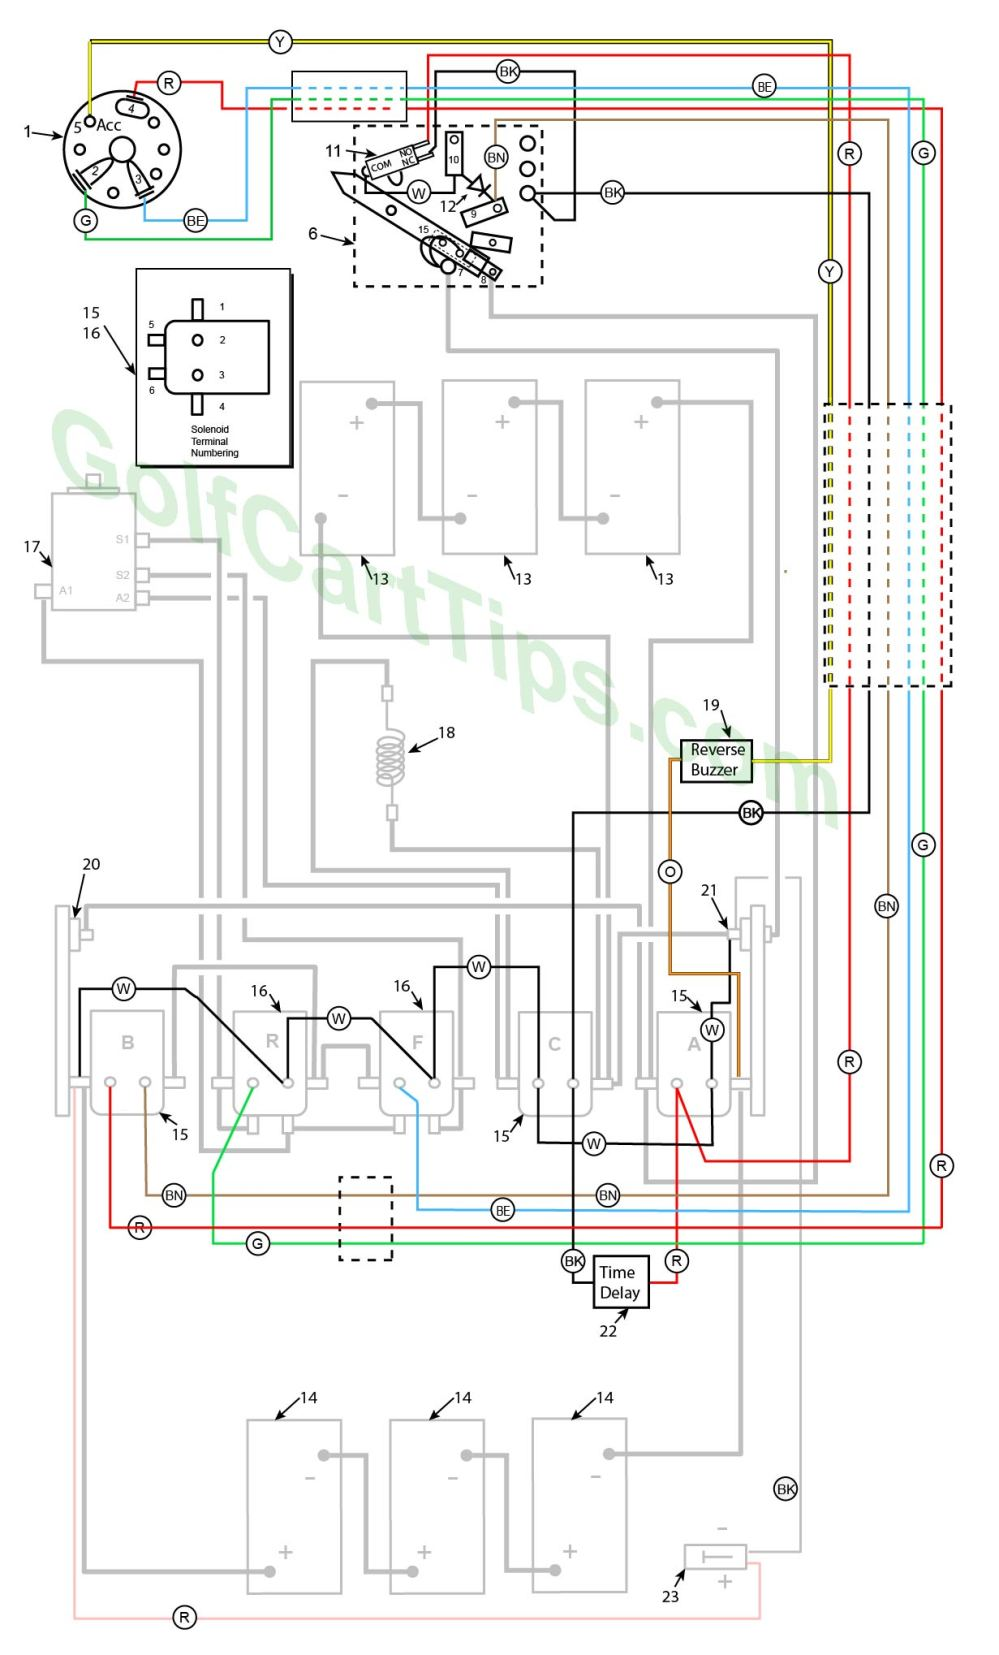 medium resolution of 1979 82 model de de 3 de 4 control circuit wiring diagram for 16 gauge wire harley davidson golf cart